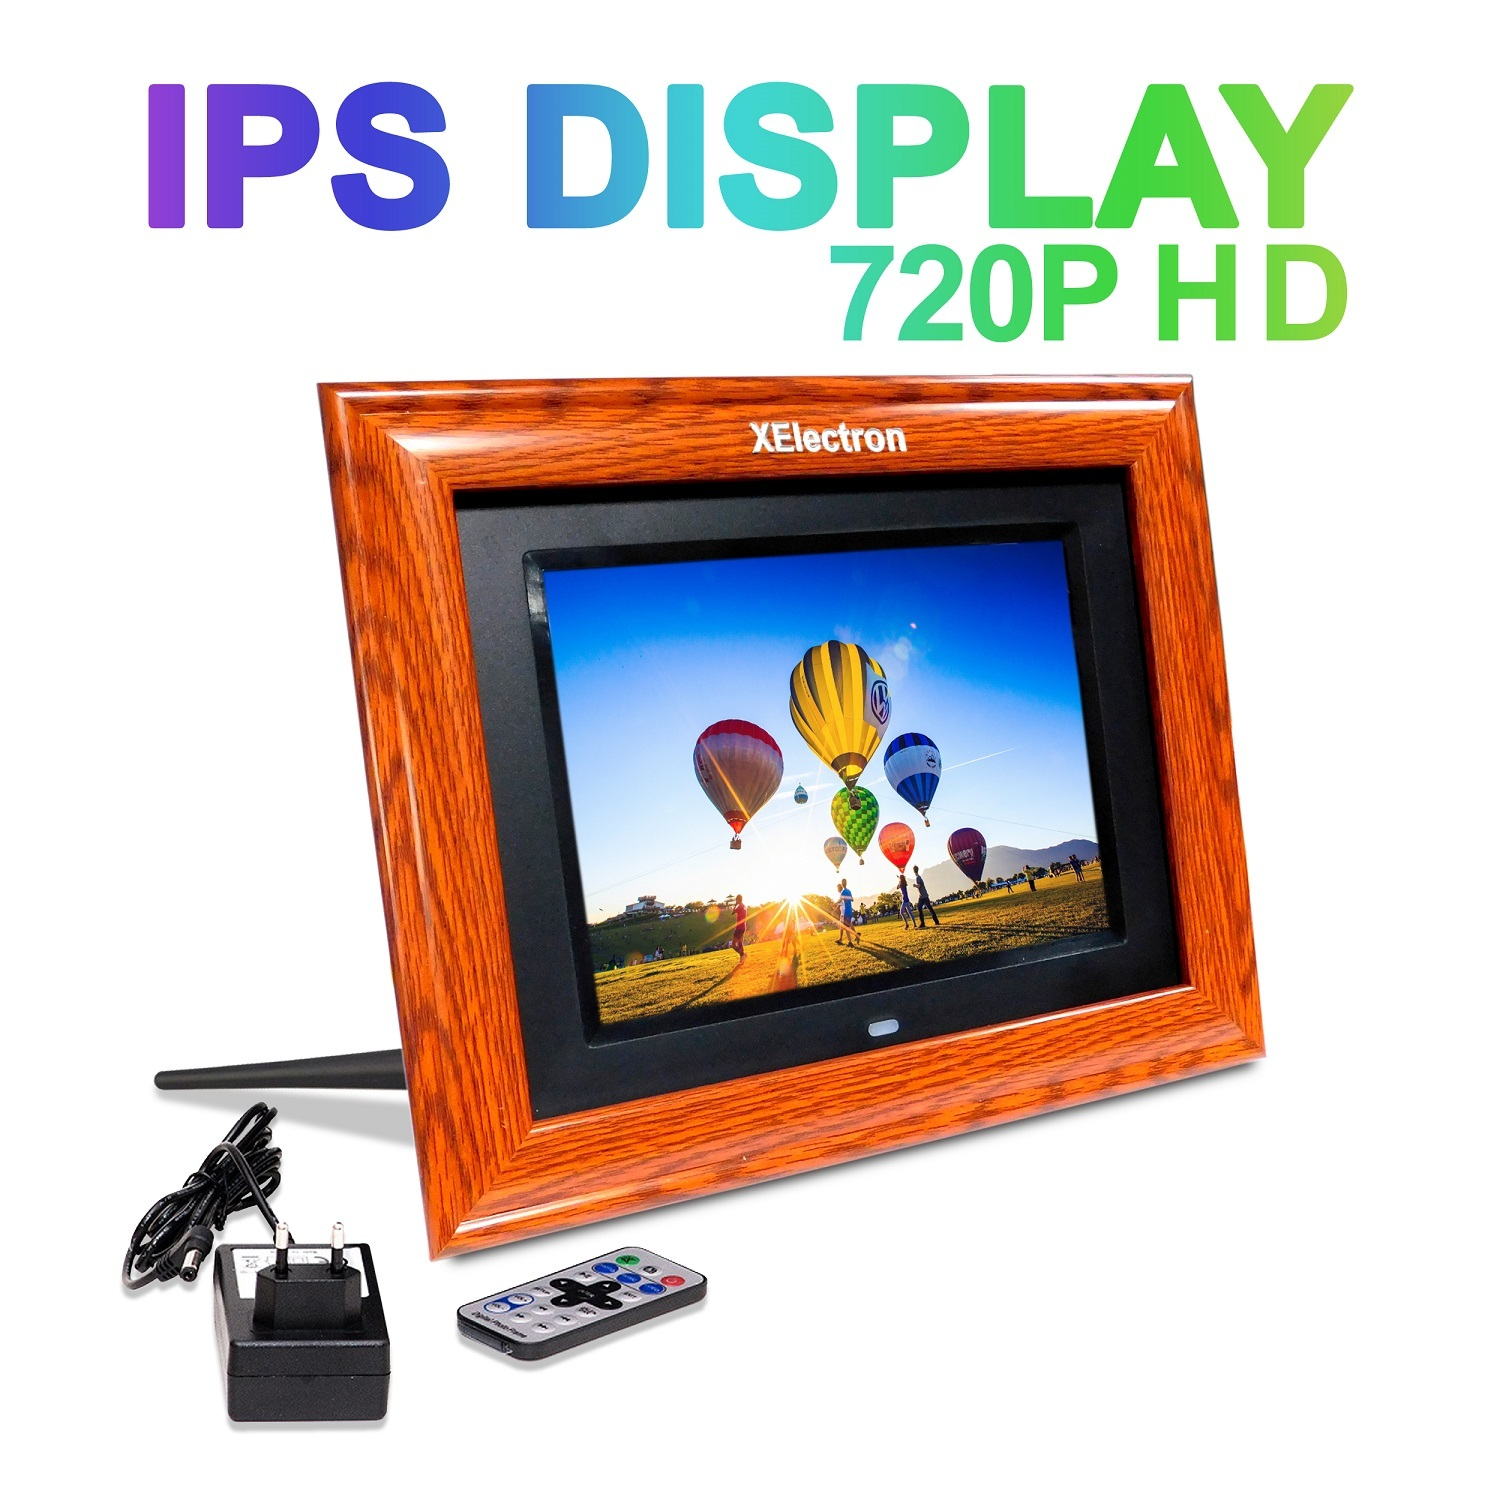 XElectron 8 inch IPS Display Wooden Digital Photo Frame/Video Frame Plays Images, Video & Music